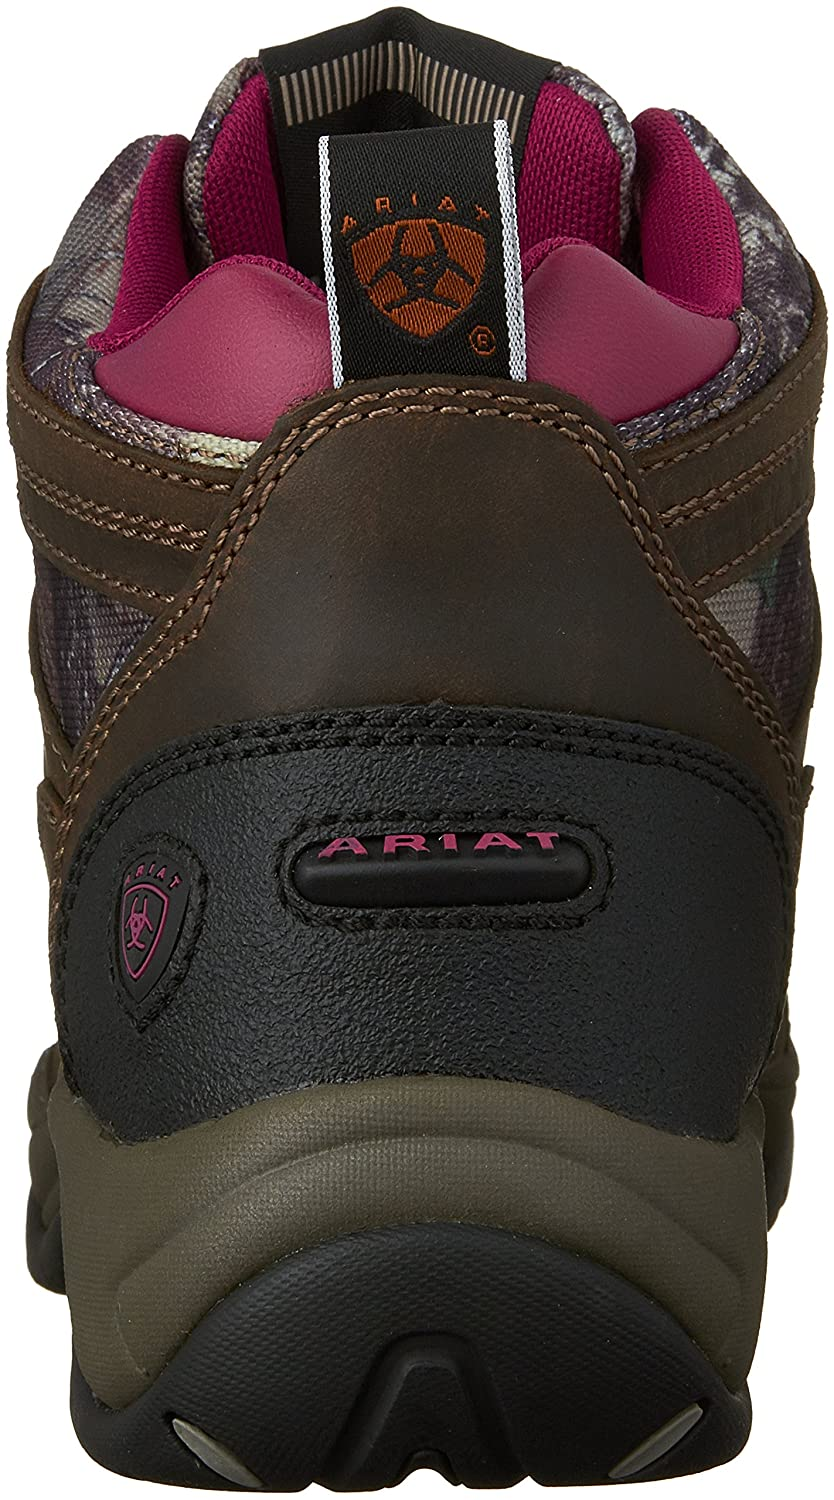 Ariat Women's Terrain Work Boot B00UB6ZINM 5.5 B(M) US|Pink Multi/True Timber